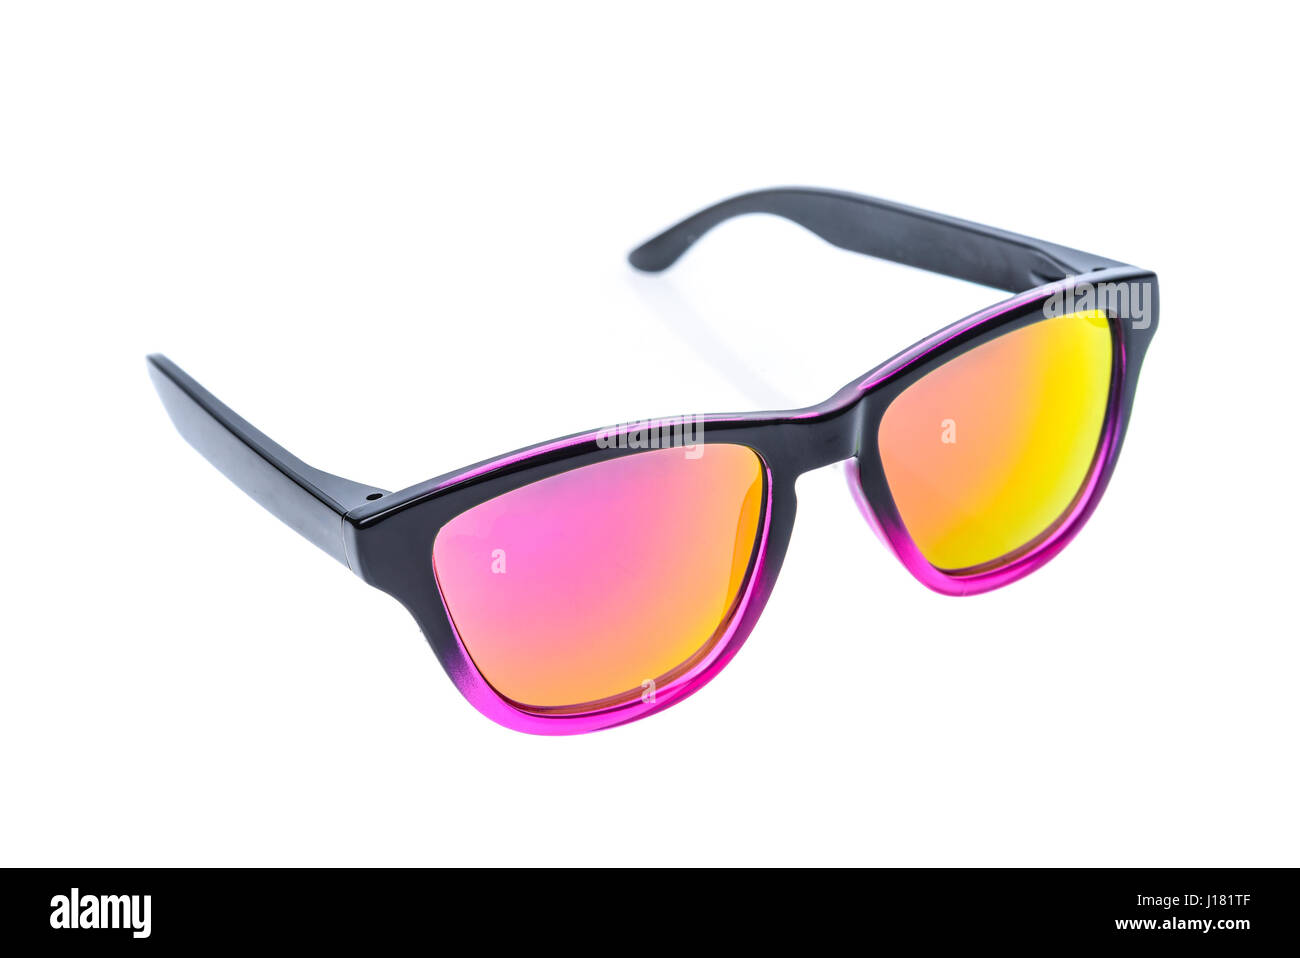 Fashion Children sunglasses, sun shades or spectacles isolated on white background. Color child glasses protection from sun and UV rays. Concept of su Stock Photo